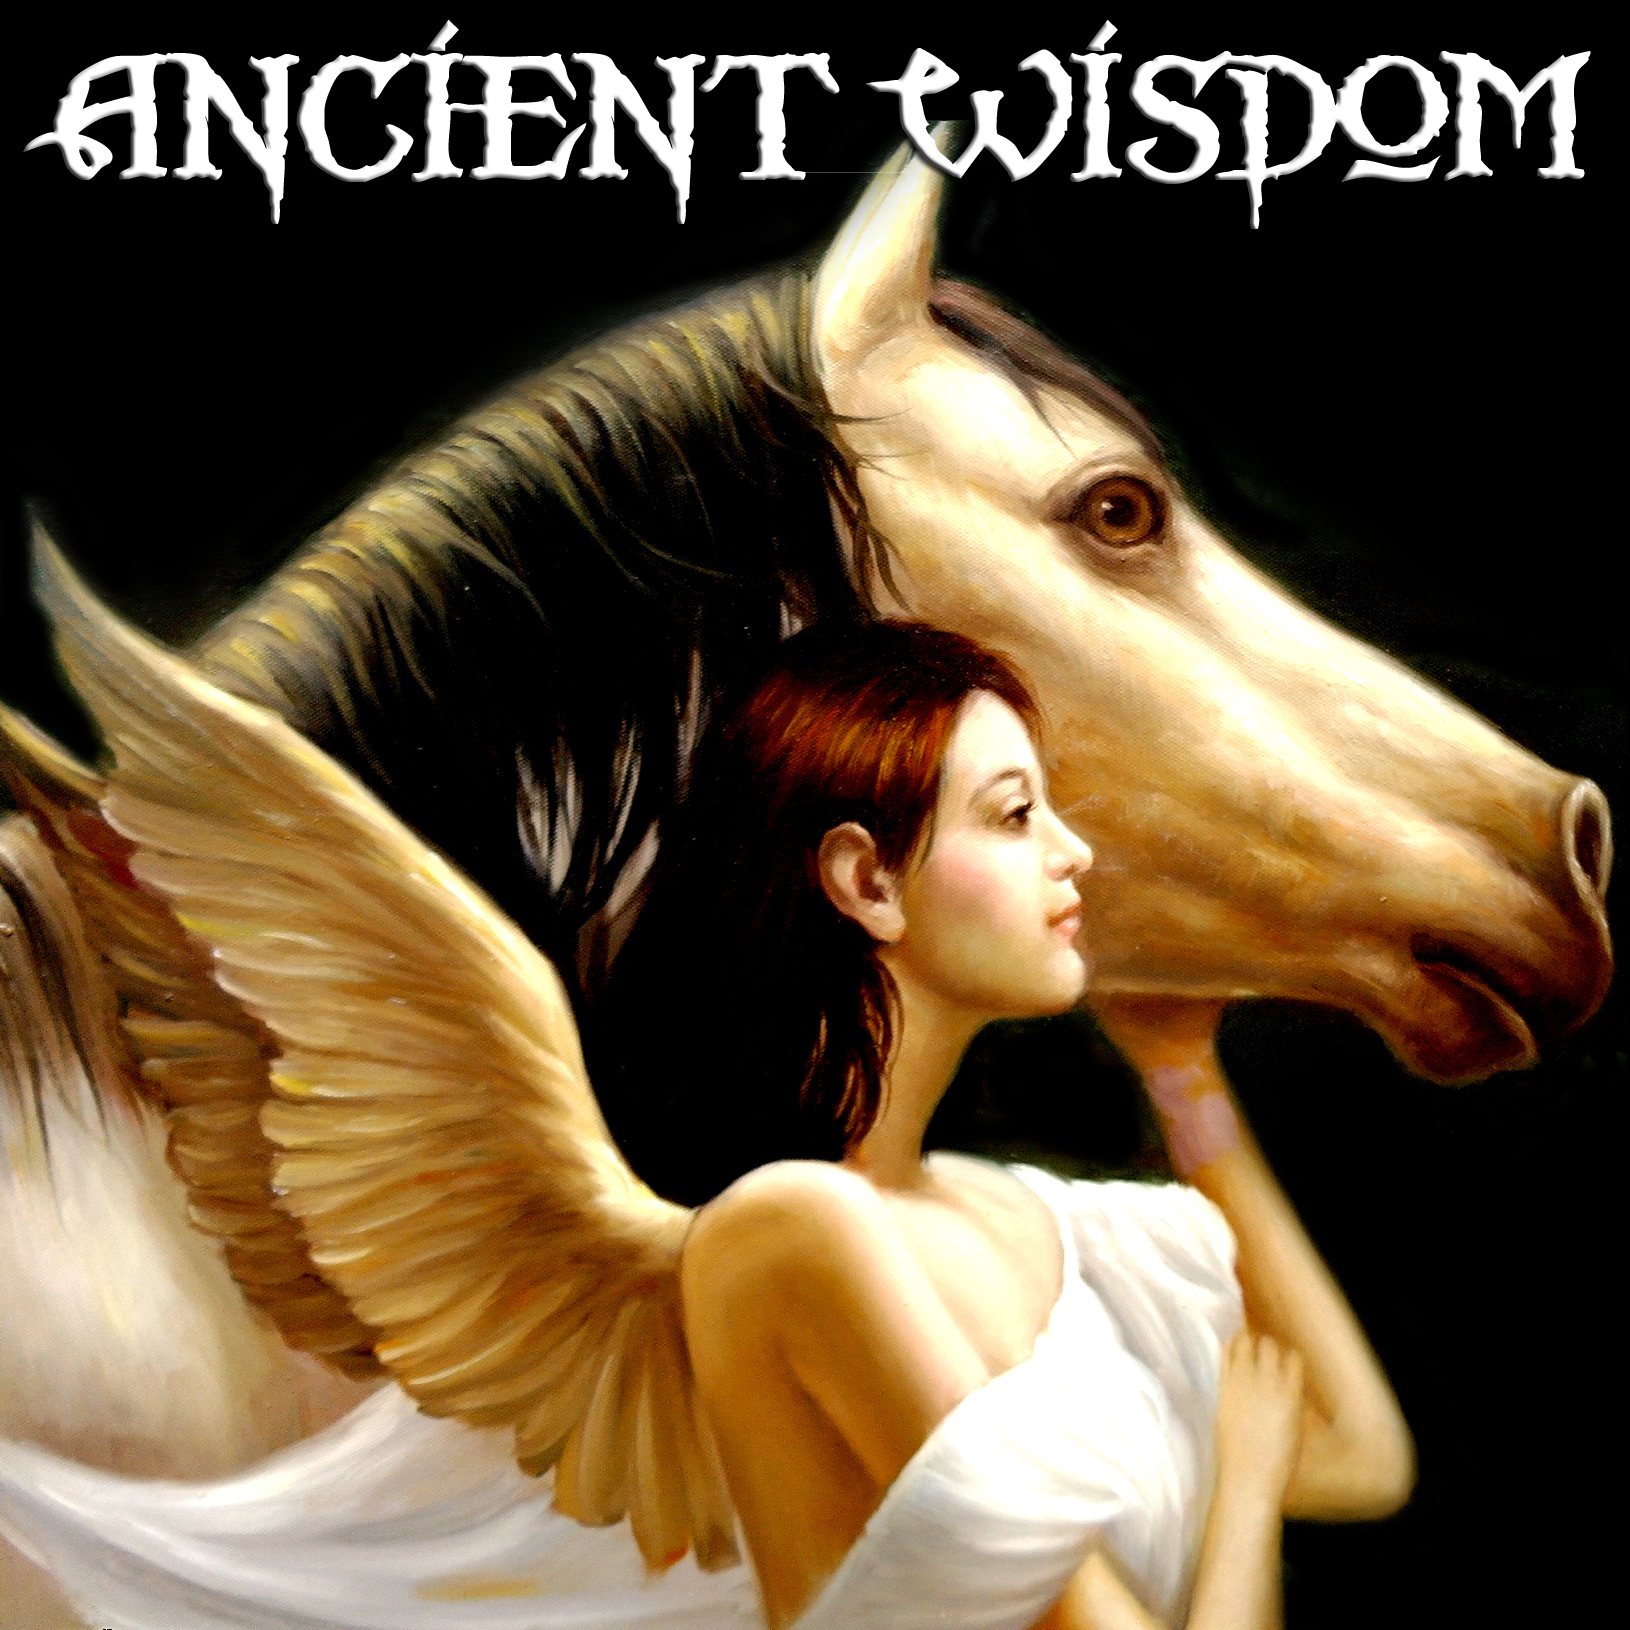 Read Ancient Wisdom Wholesale Reviews